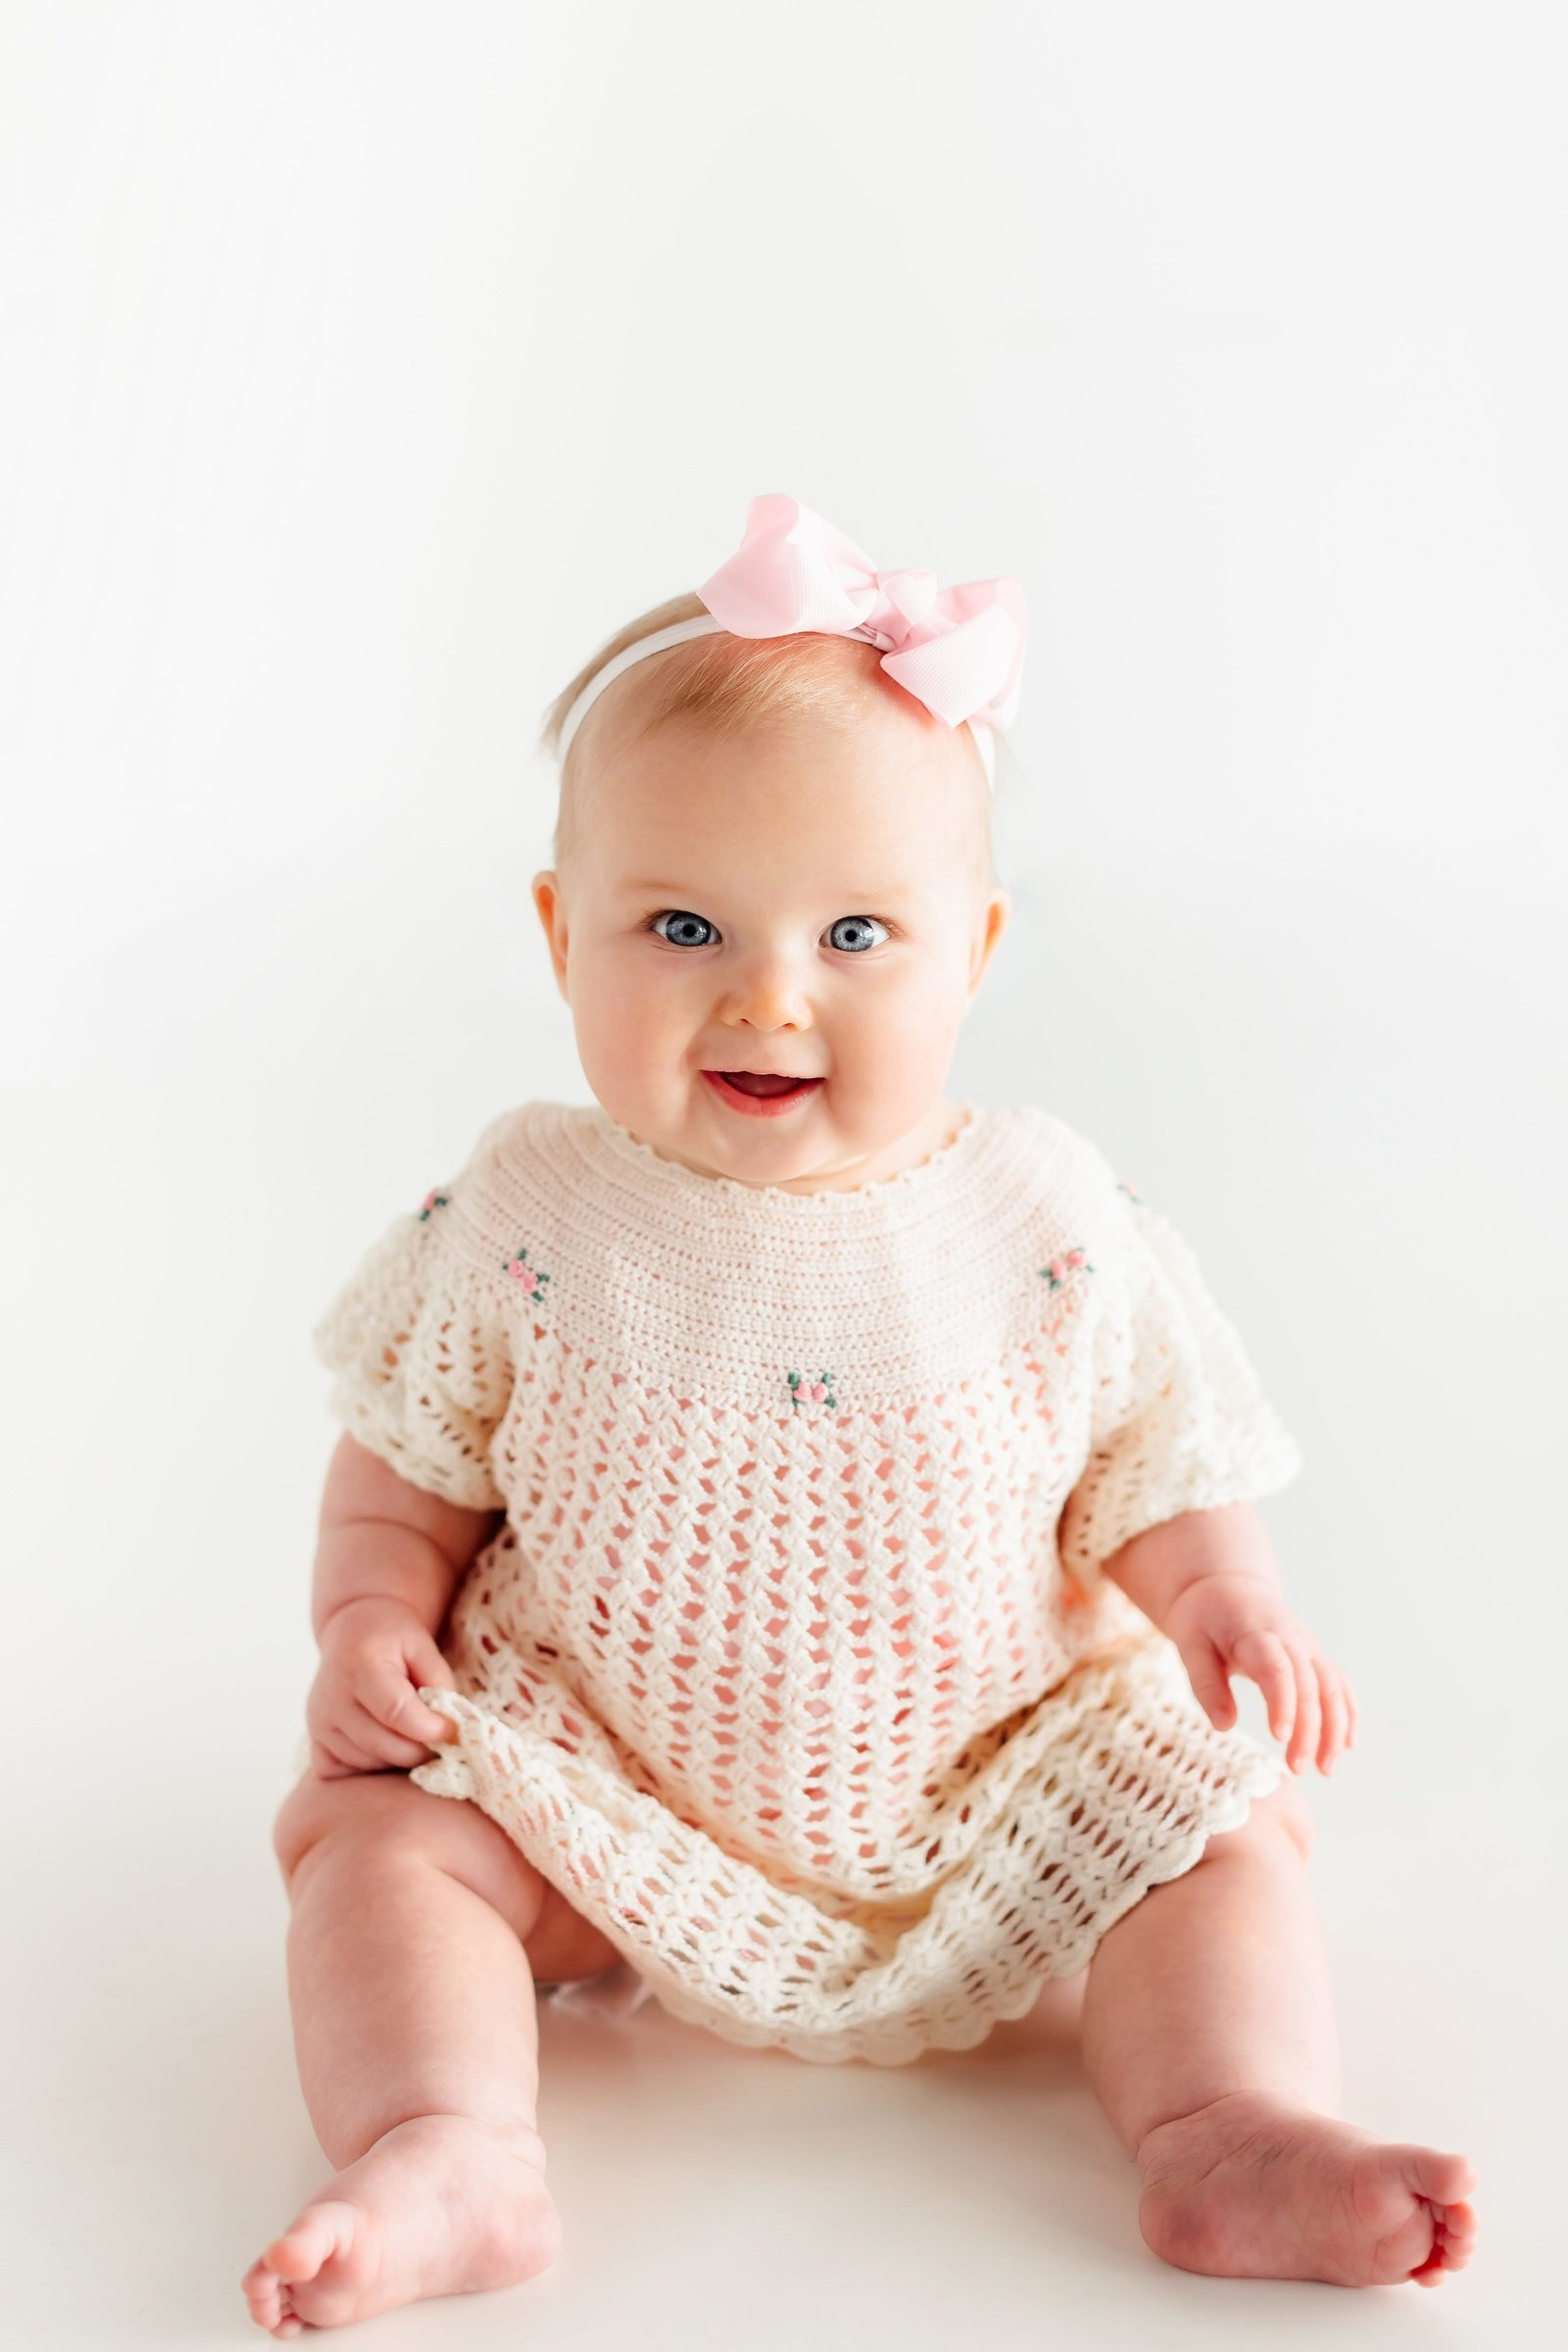 St_Louis_Baby_Photographer_Kelly_Laramore_Photography_83